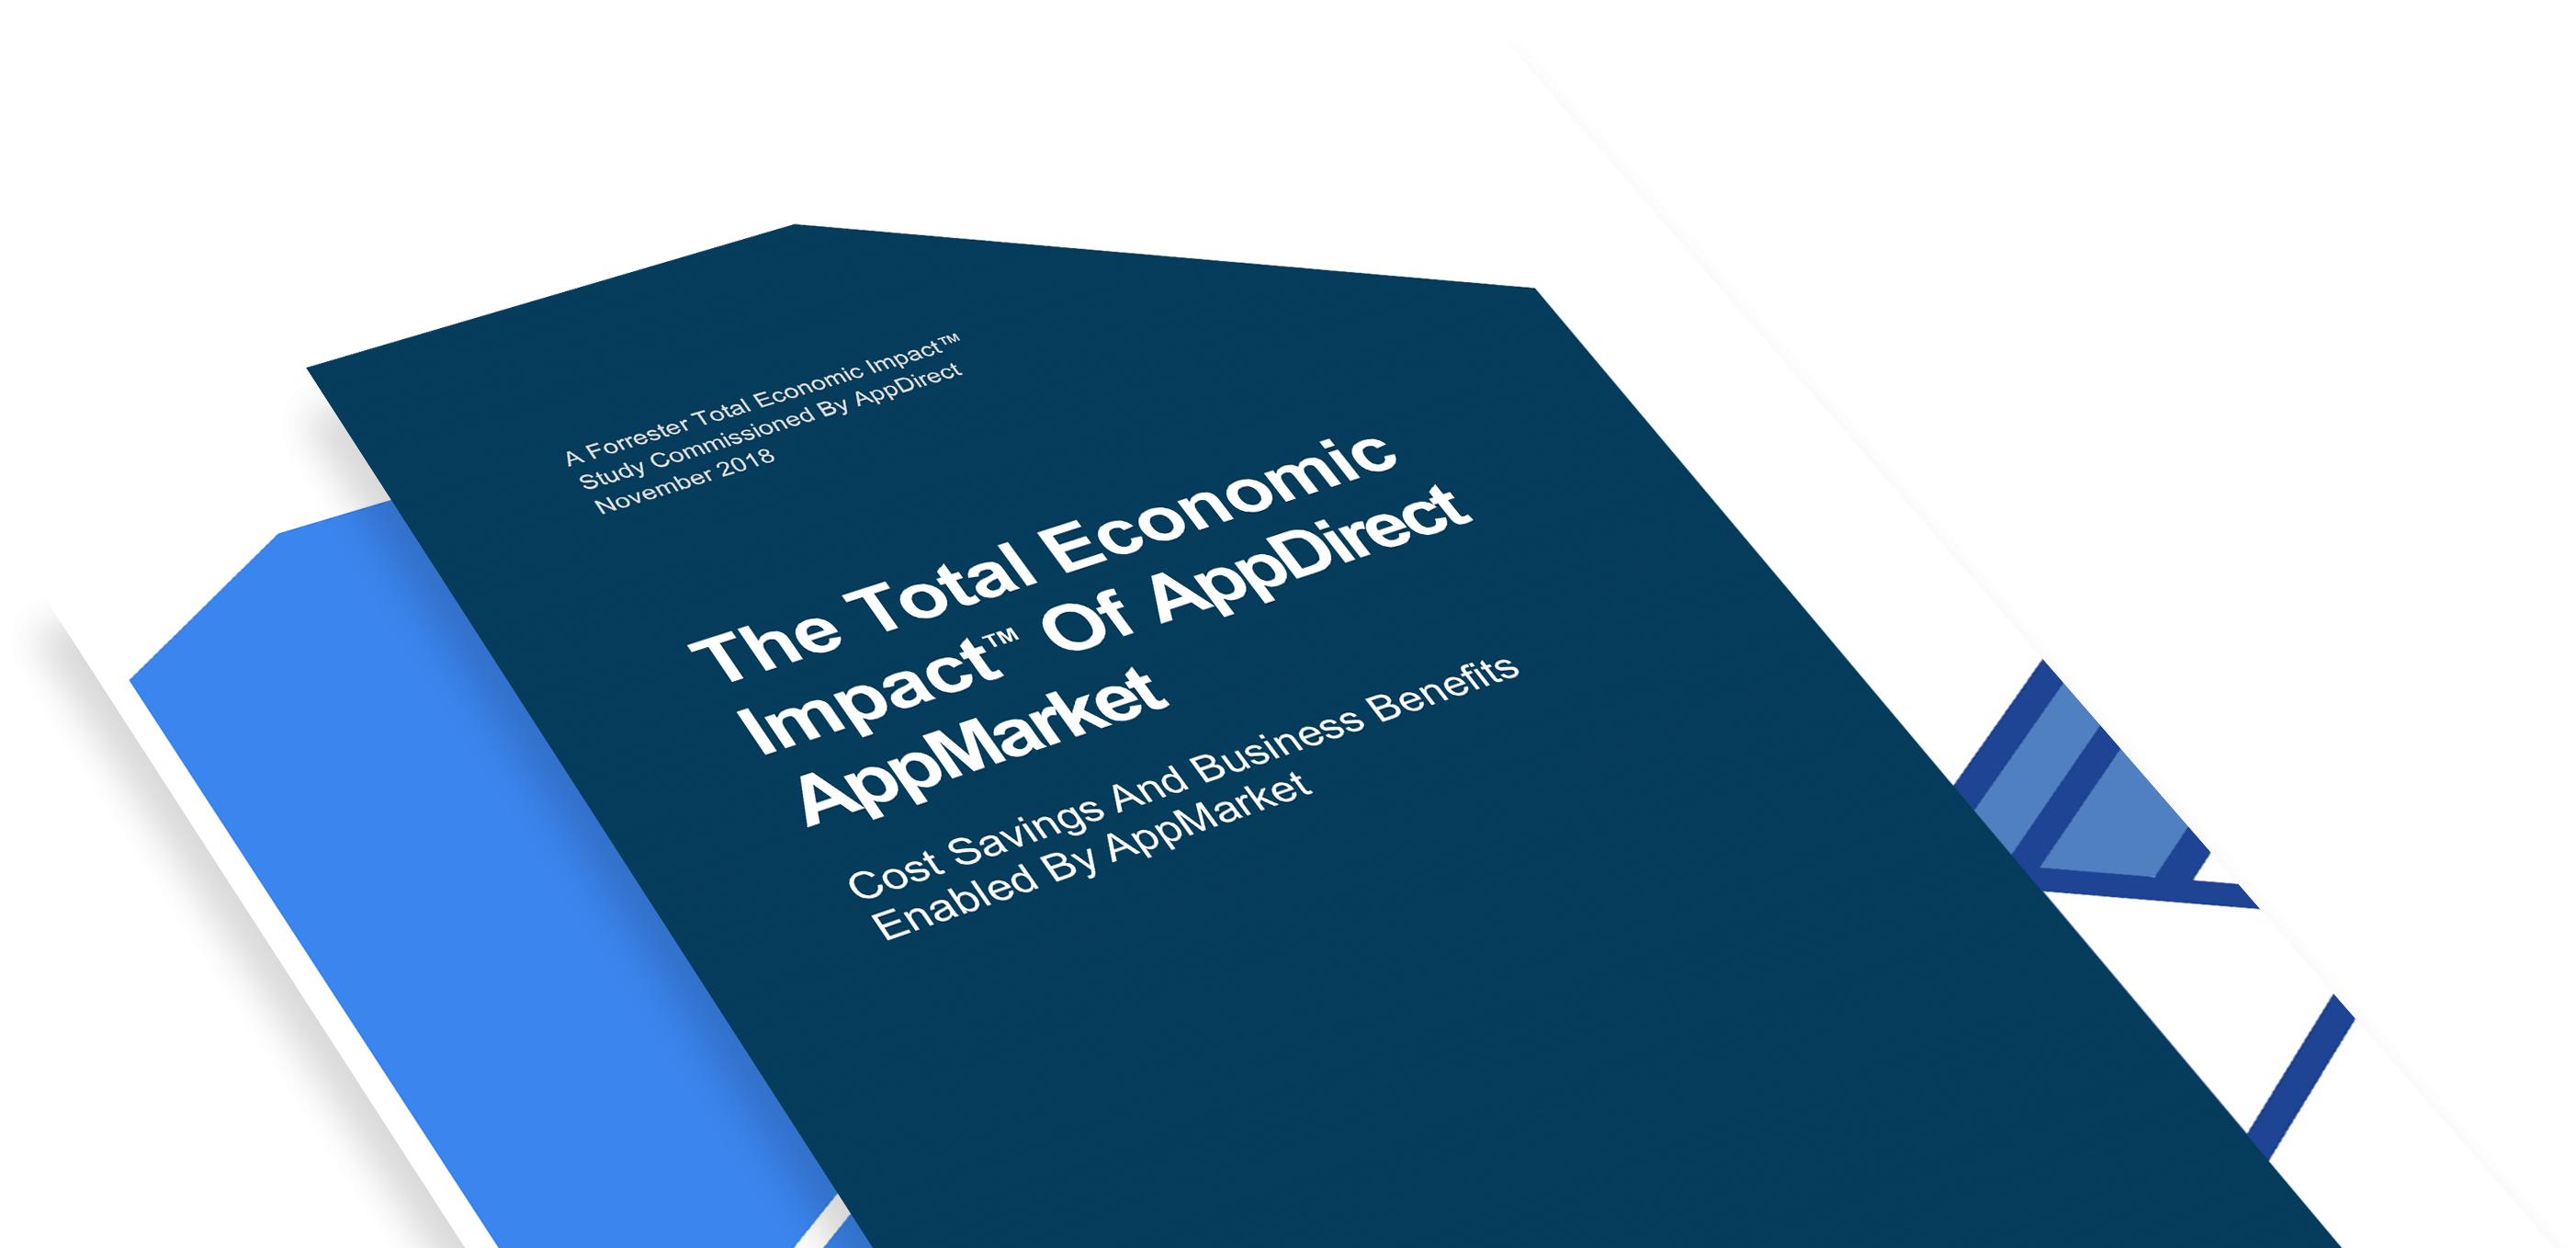 The Forrester Total Economic Impact™ of AppMarket